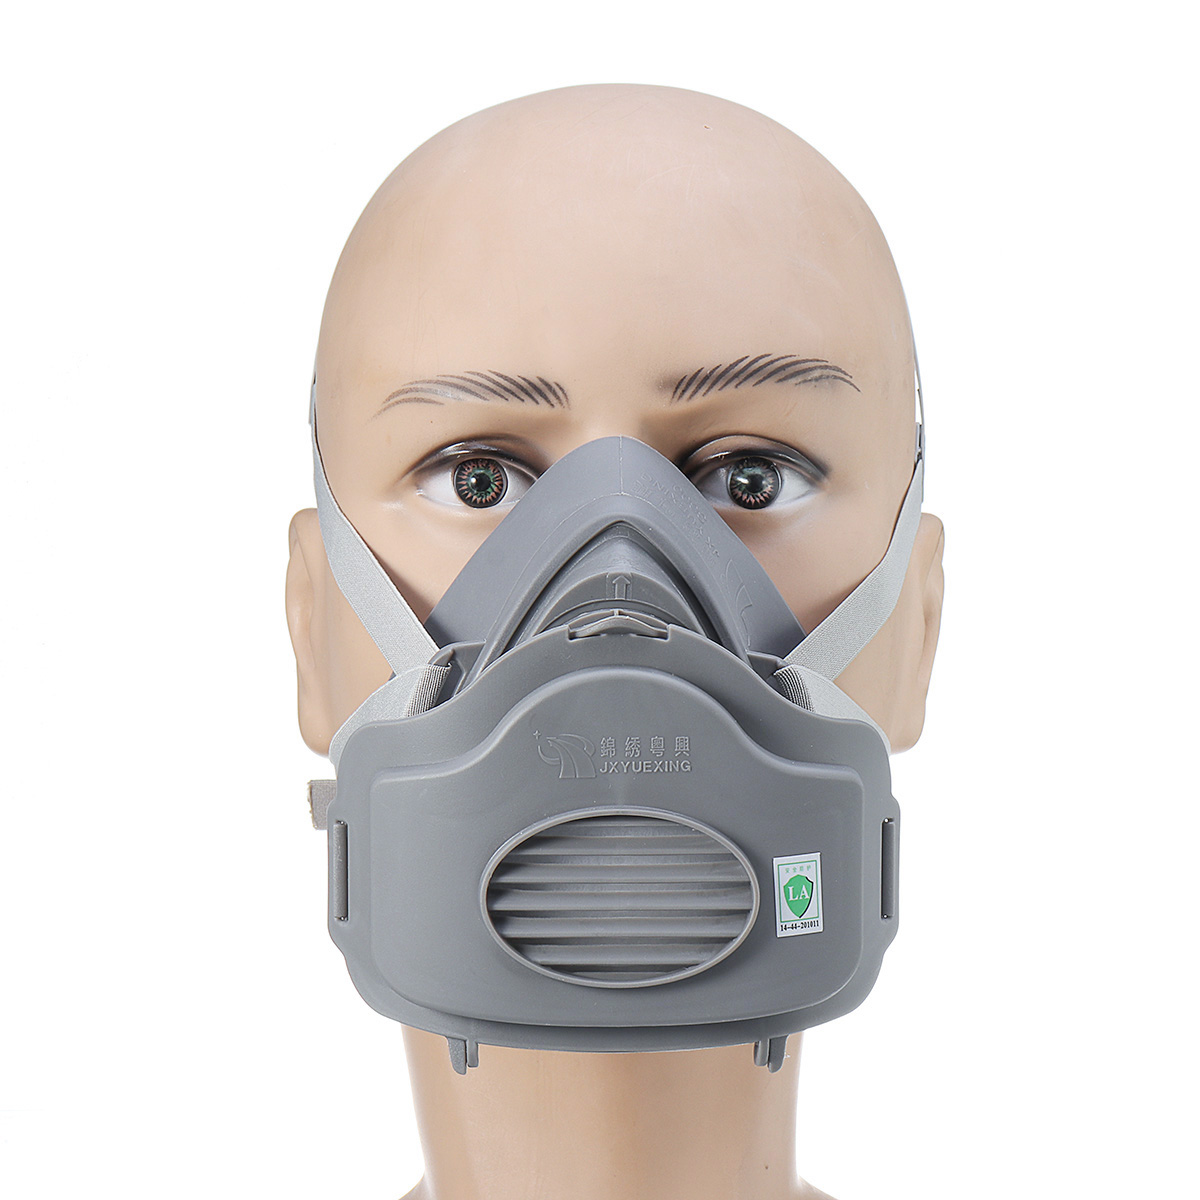 Dewbest 2 In 1 Function 6800 Full Face Respirator Silicone Full Face Gas Mask Facepiece Spraying Painting Keep You Fit All The Time Masks Back To Search Resultssecurity & Protection